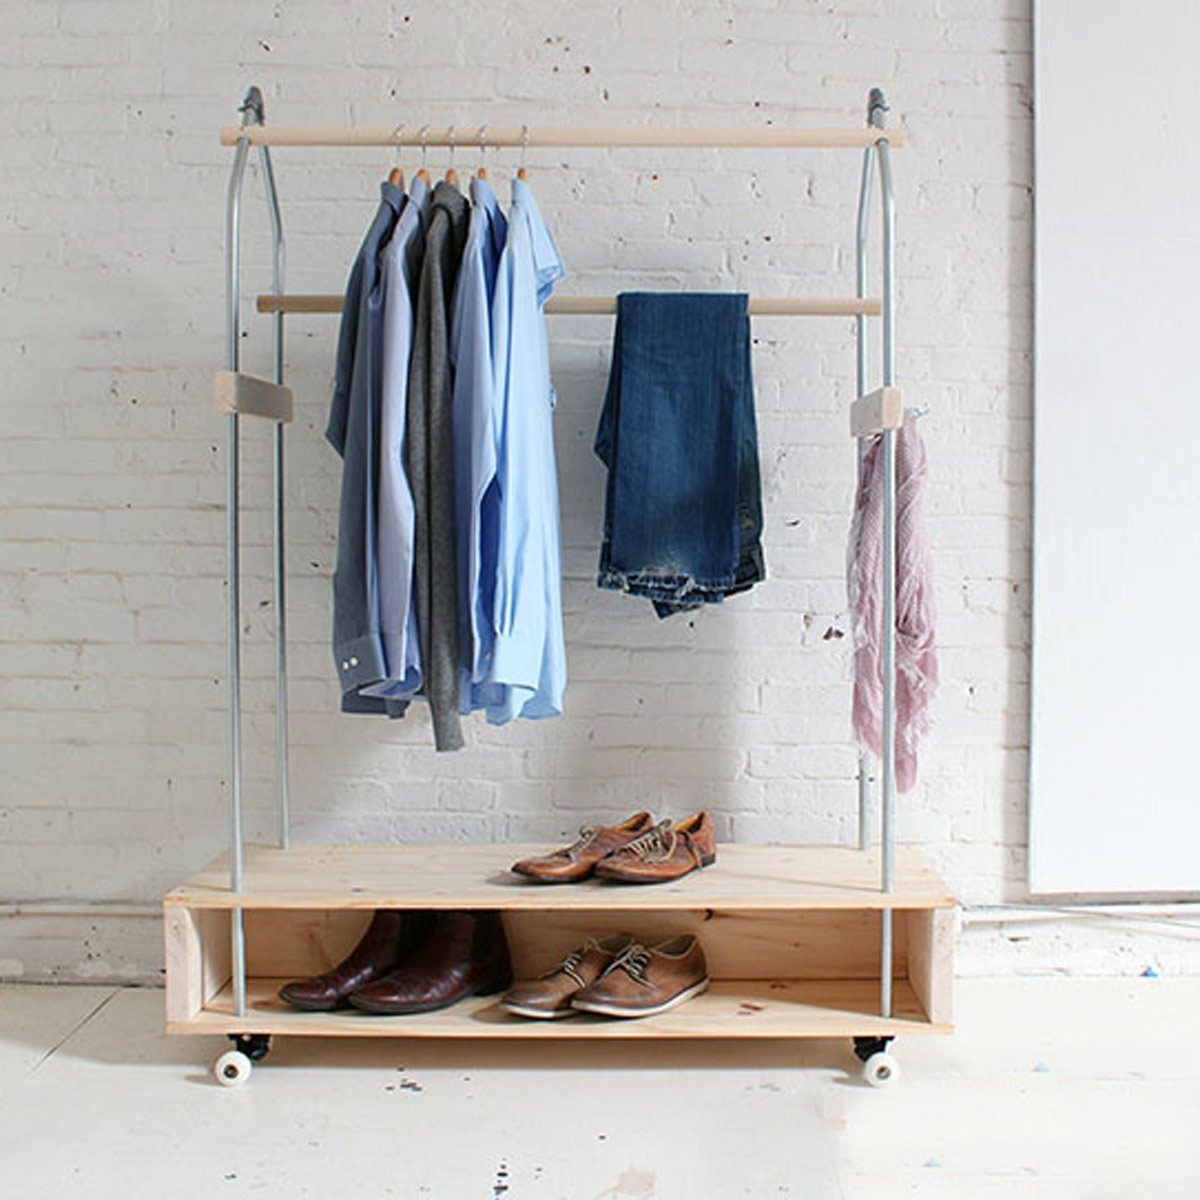 Best Way to Store Clothes: Try a Rolling Garment Rack